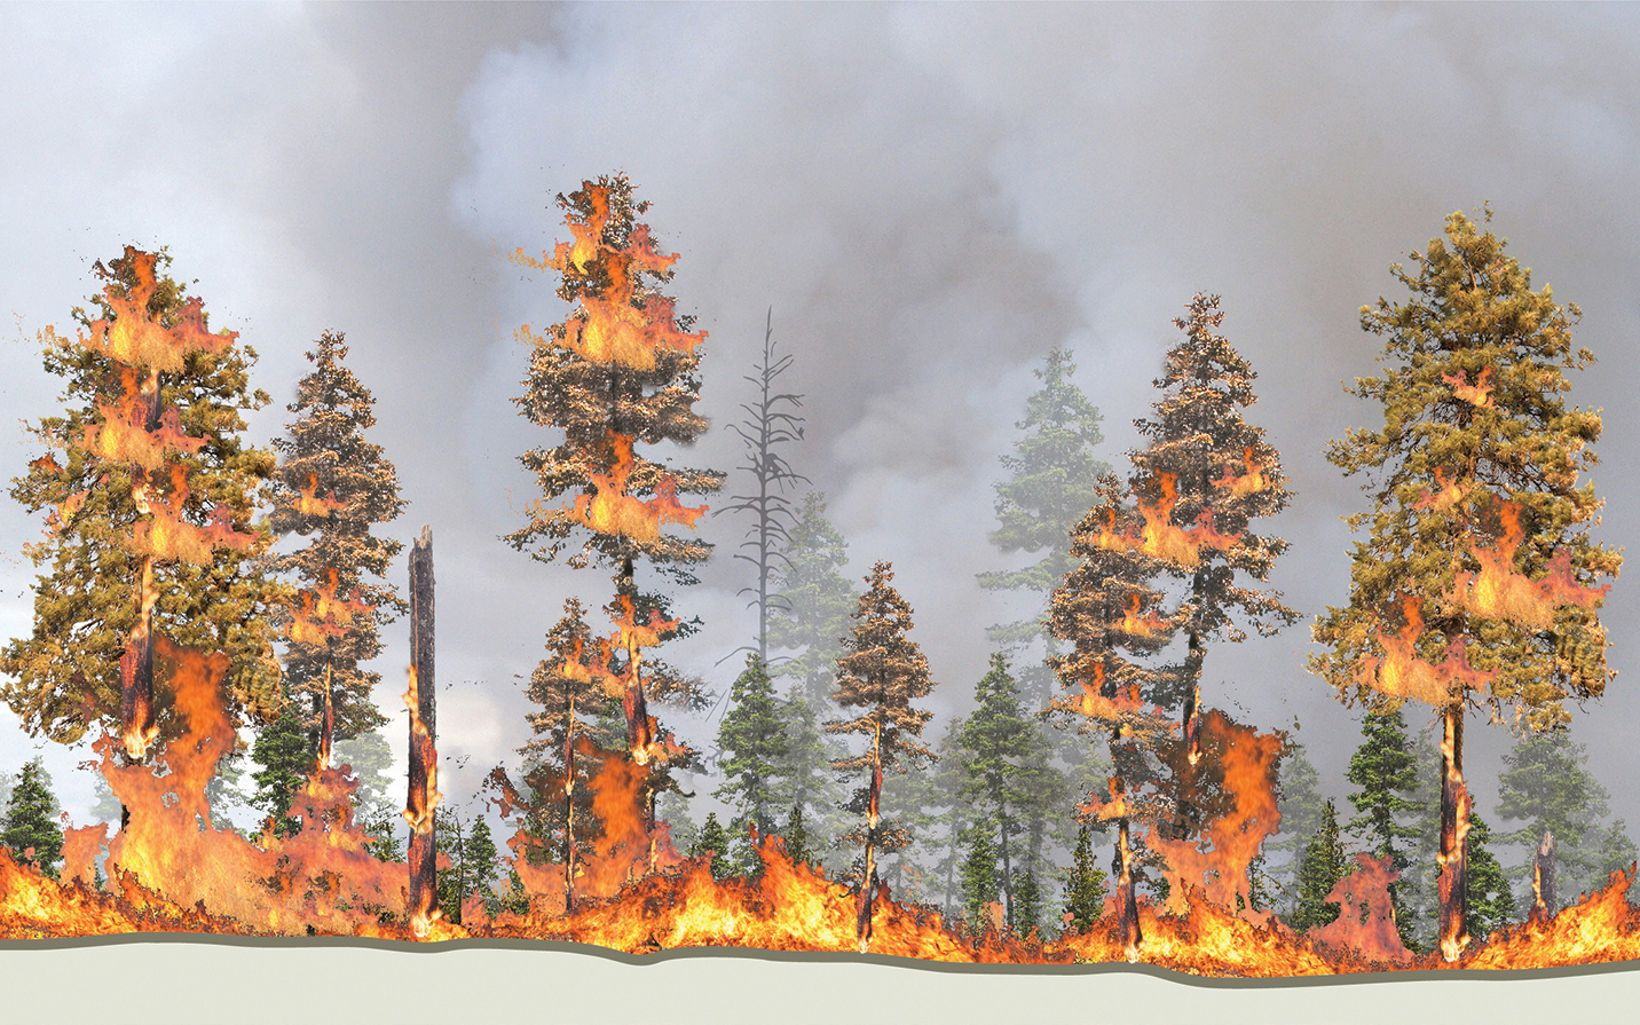 Fire in unthinned forest